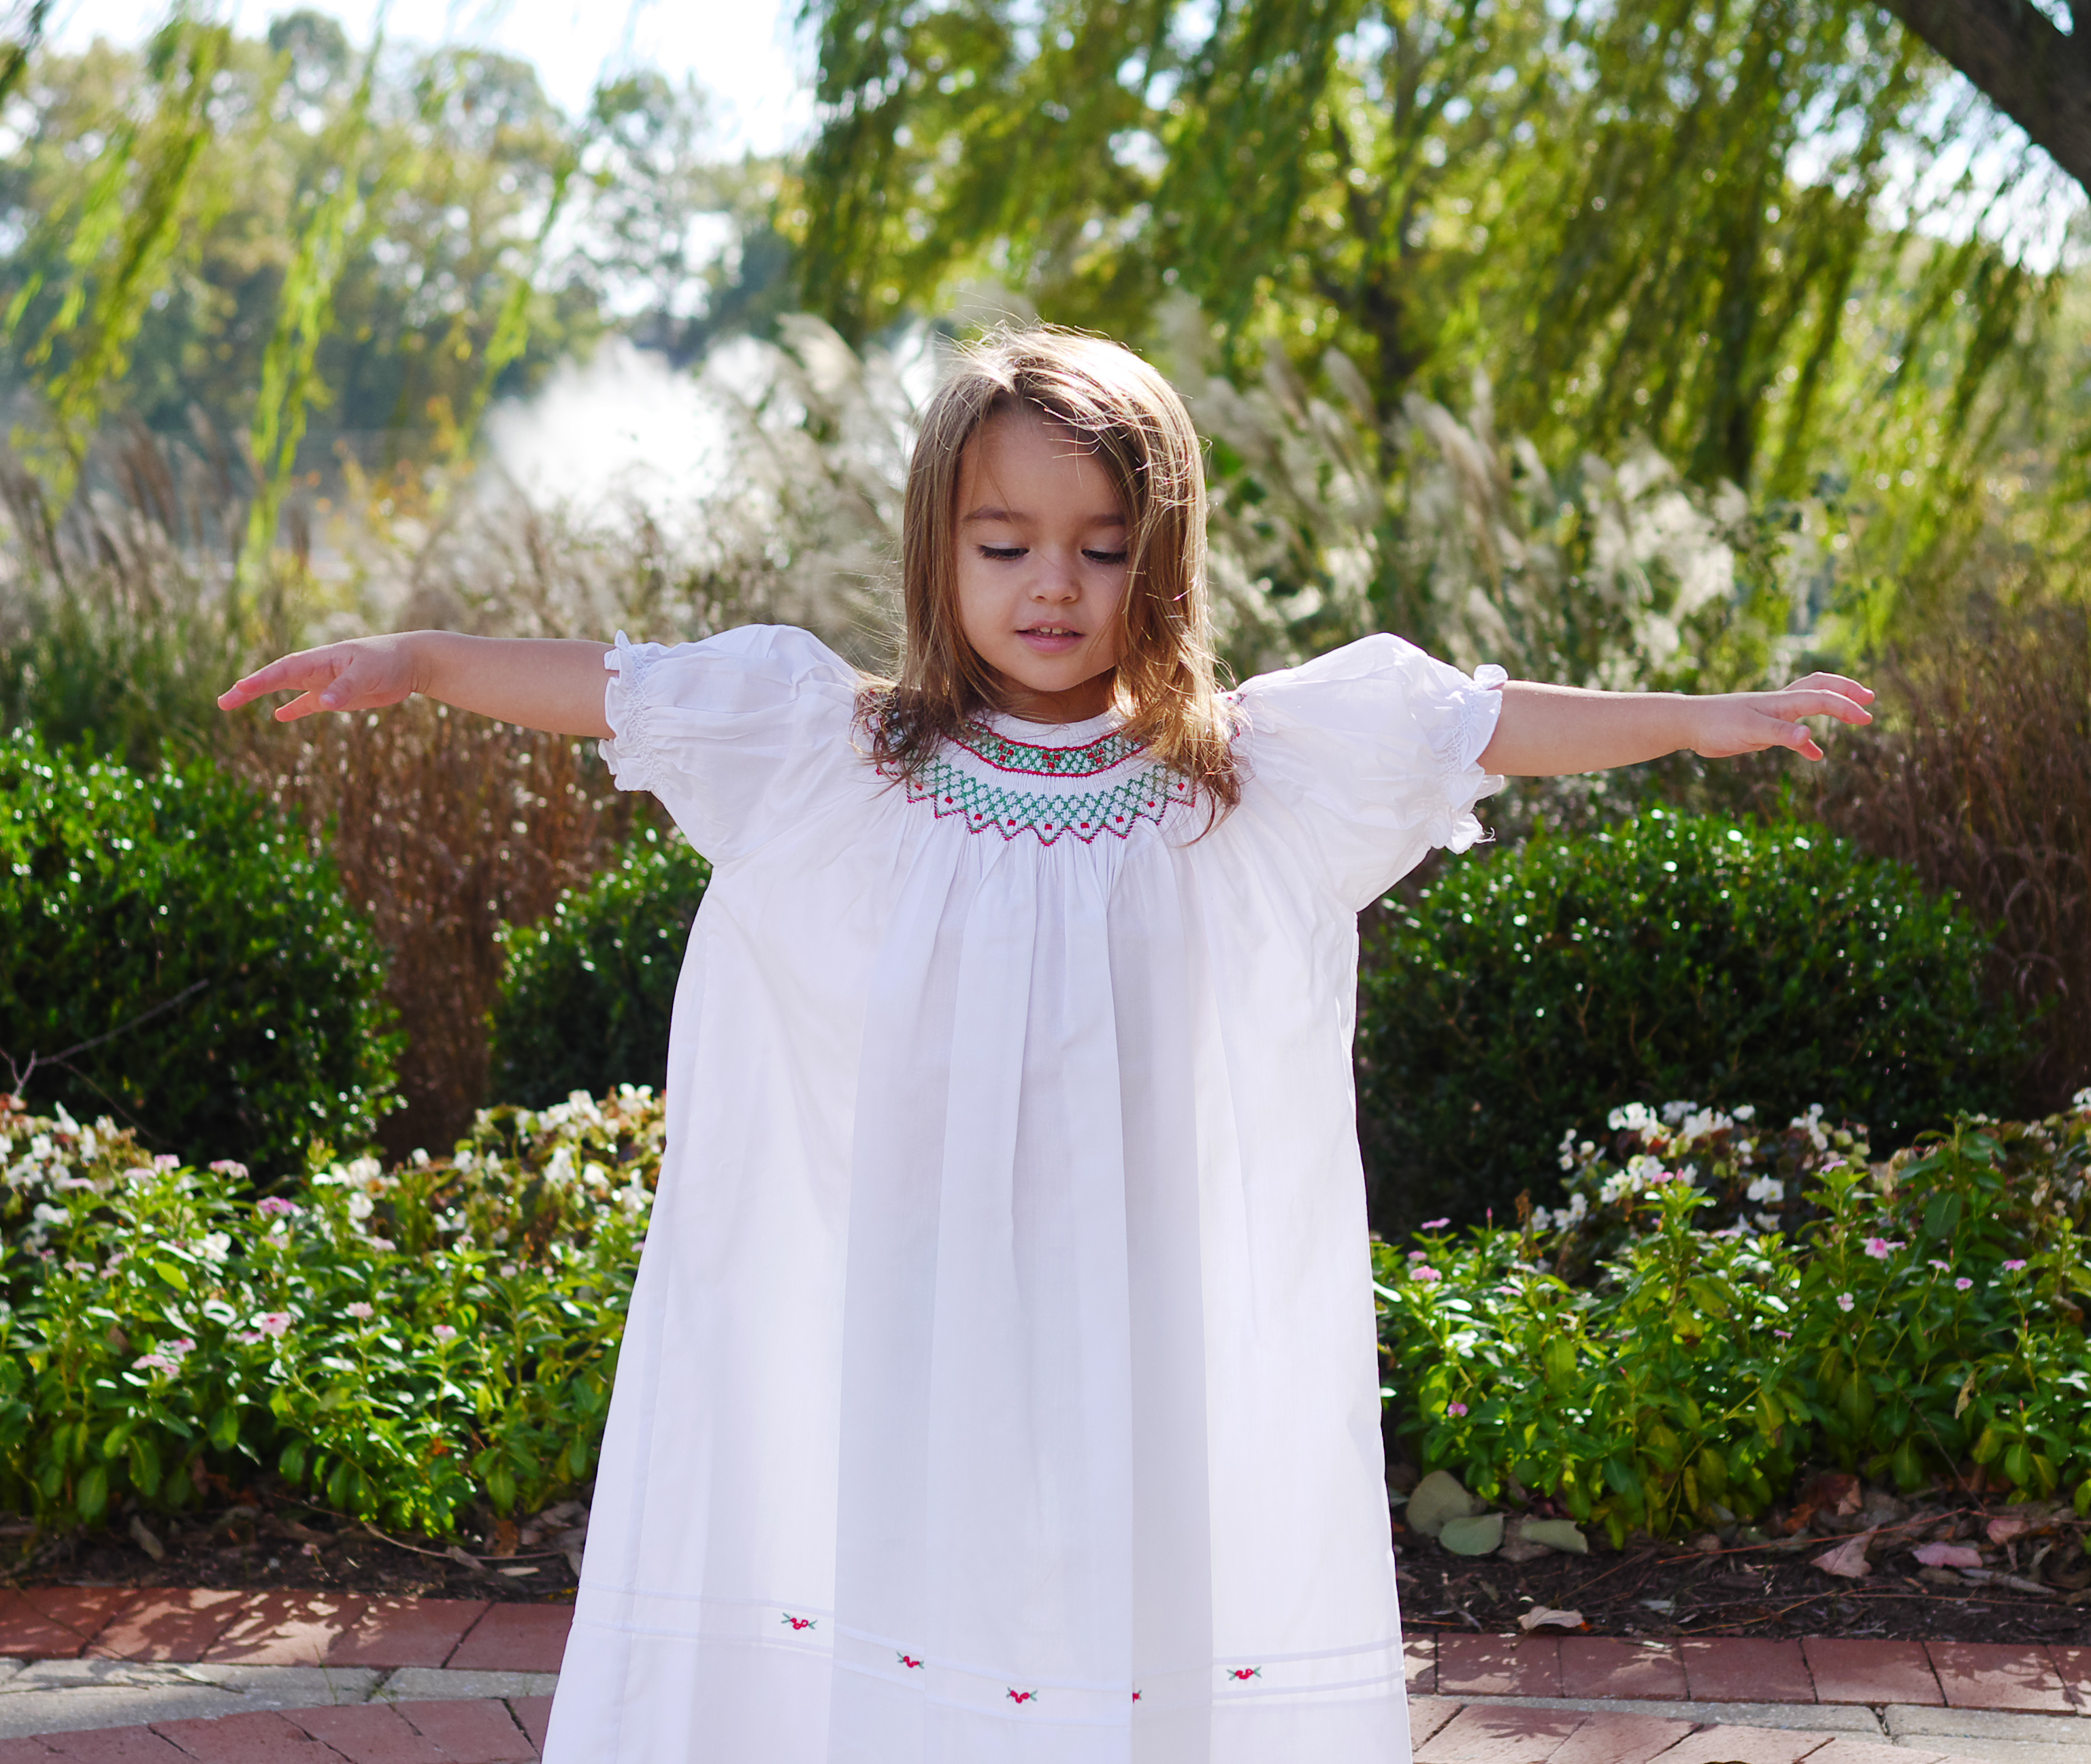 3 Tips To Make Your Children's Holiday Photo Session Go Smoothly featuring the Smocked Holiday Dress Feltman Brothers on Theresa's Reviews www.theresasreviews.com